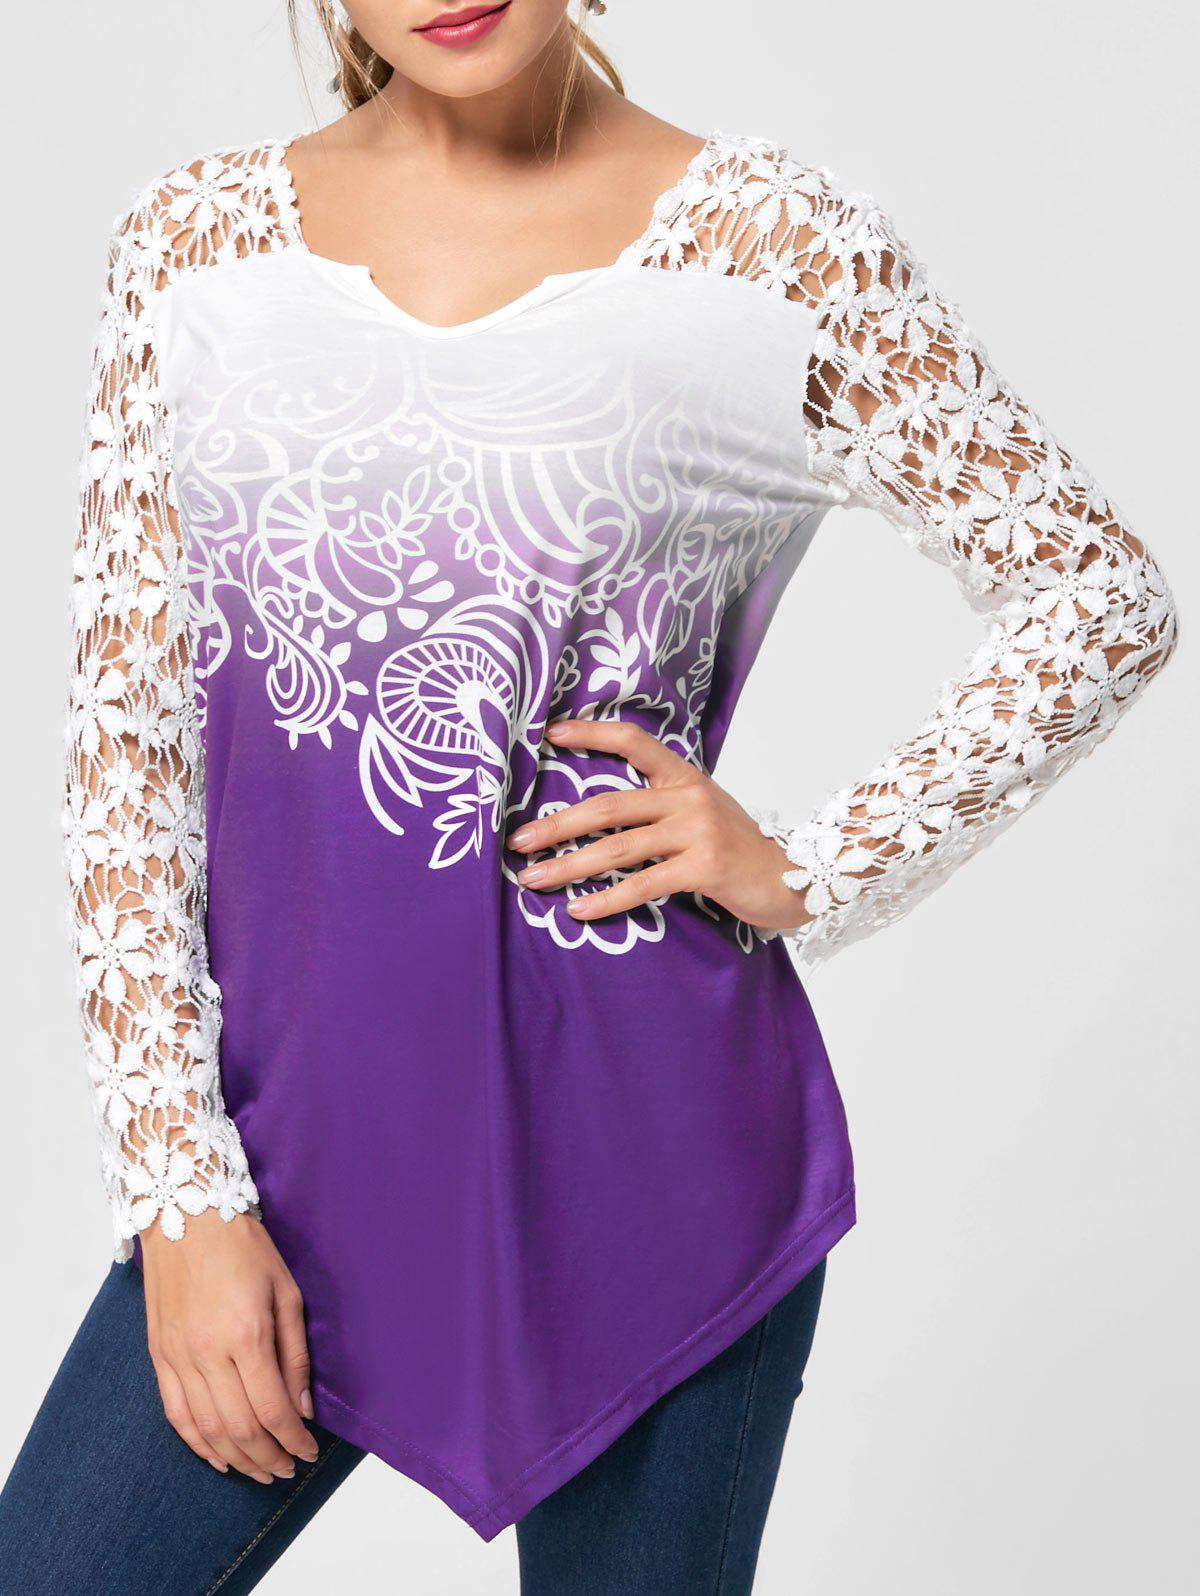 Ombre Lace Yoke Long Sleeve BlouseWOMEN<br><br>Size: 2XL; Color: PURPLE; Occasion: Casual,Evening,Party; Style: Casual; Material: Polyester,Spandex; Shirt Length: Regular; Sleeve Length: Full; Collar: V-Neck; Pattern Type: Floral; Embellishment: Lace; Season: Fall,Spring,Summer; Weight: 0.2800kg; Package Contents: 1 x Blouse;